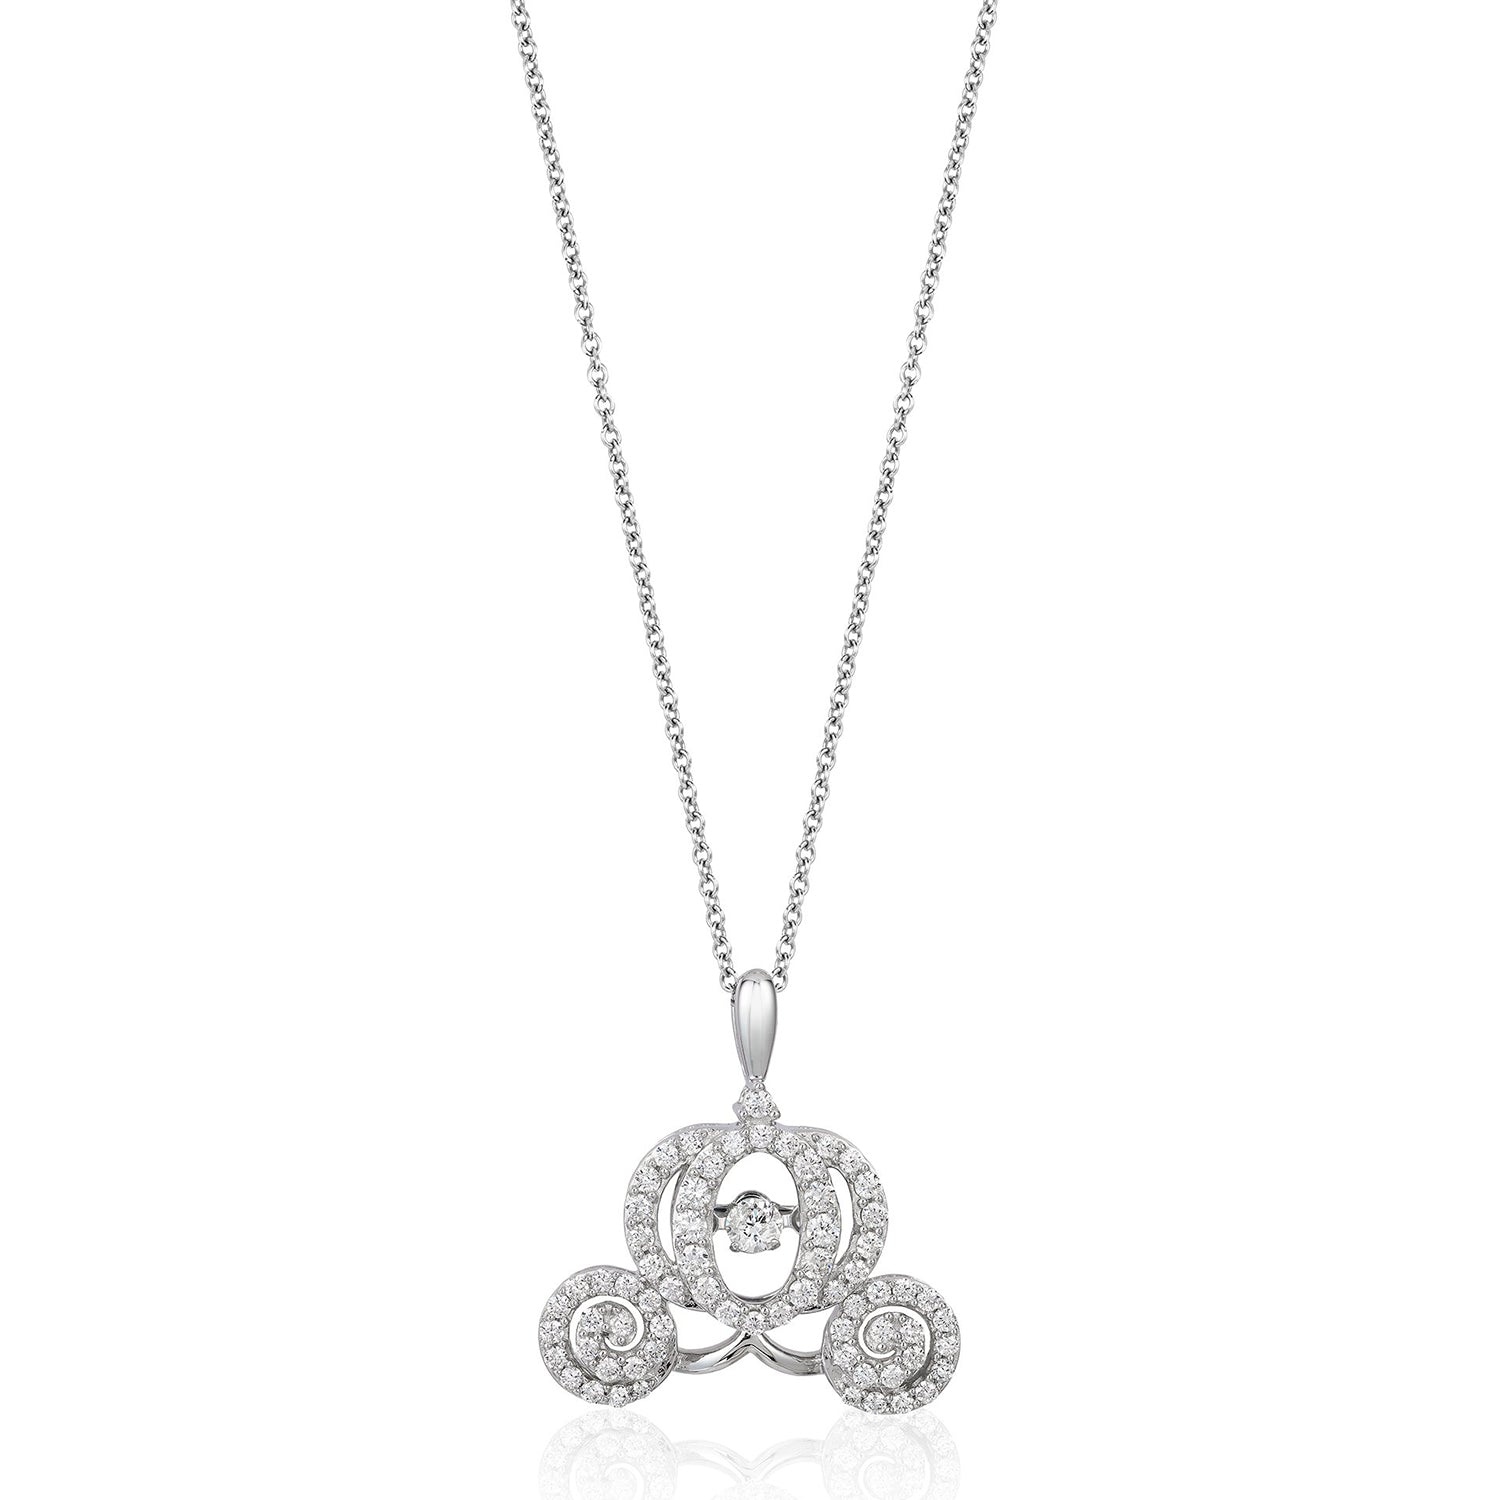 enchanted_disney-cinderella_carriage_necklace-14k_white_gold_1/2CTTW_1